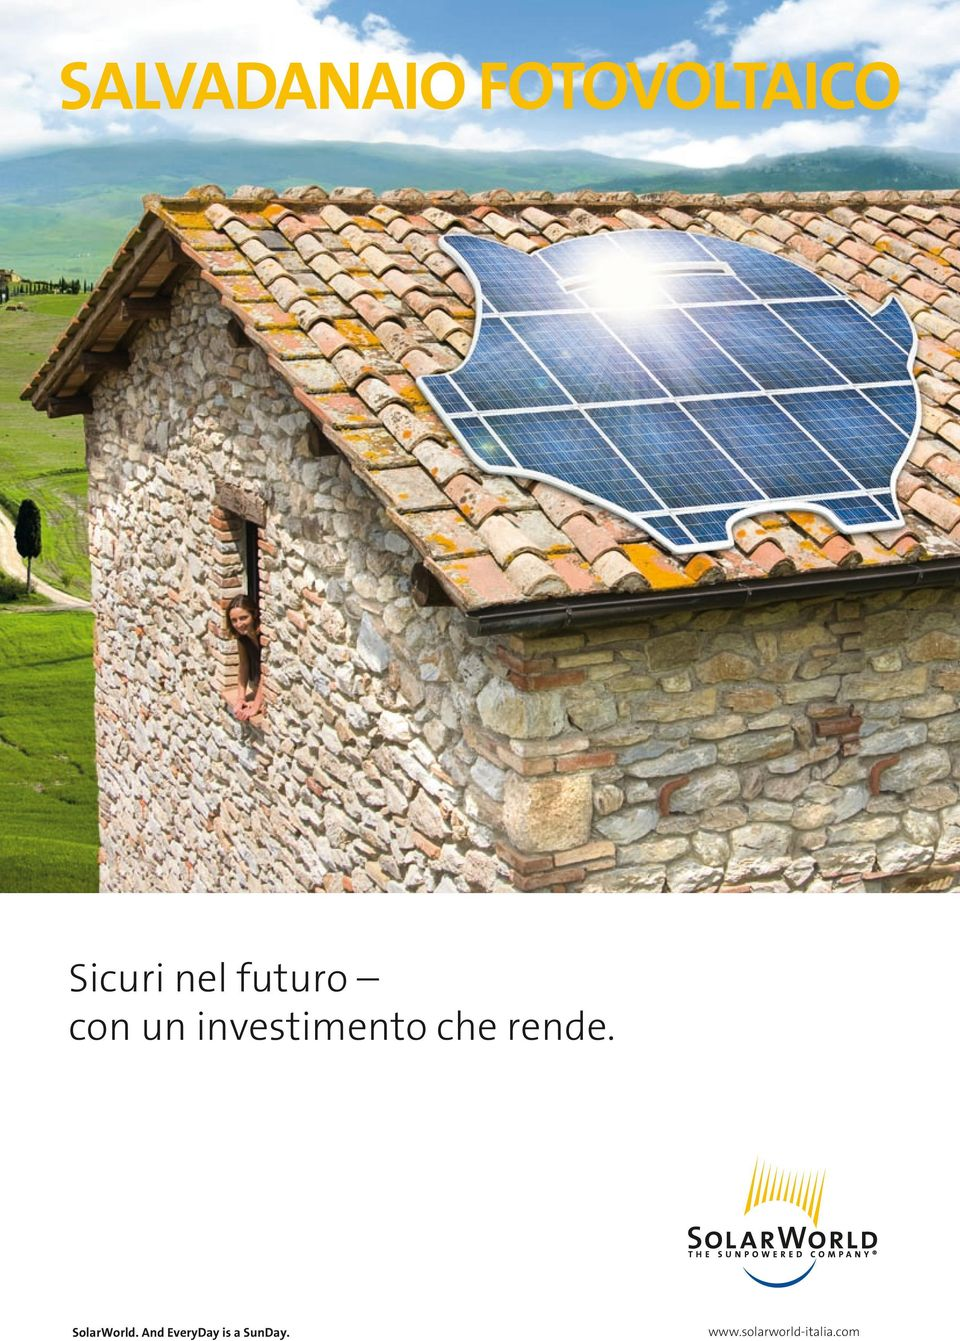 rende. SolarWorld.